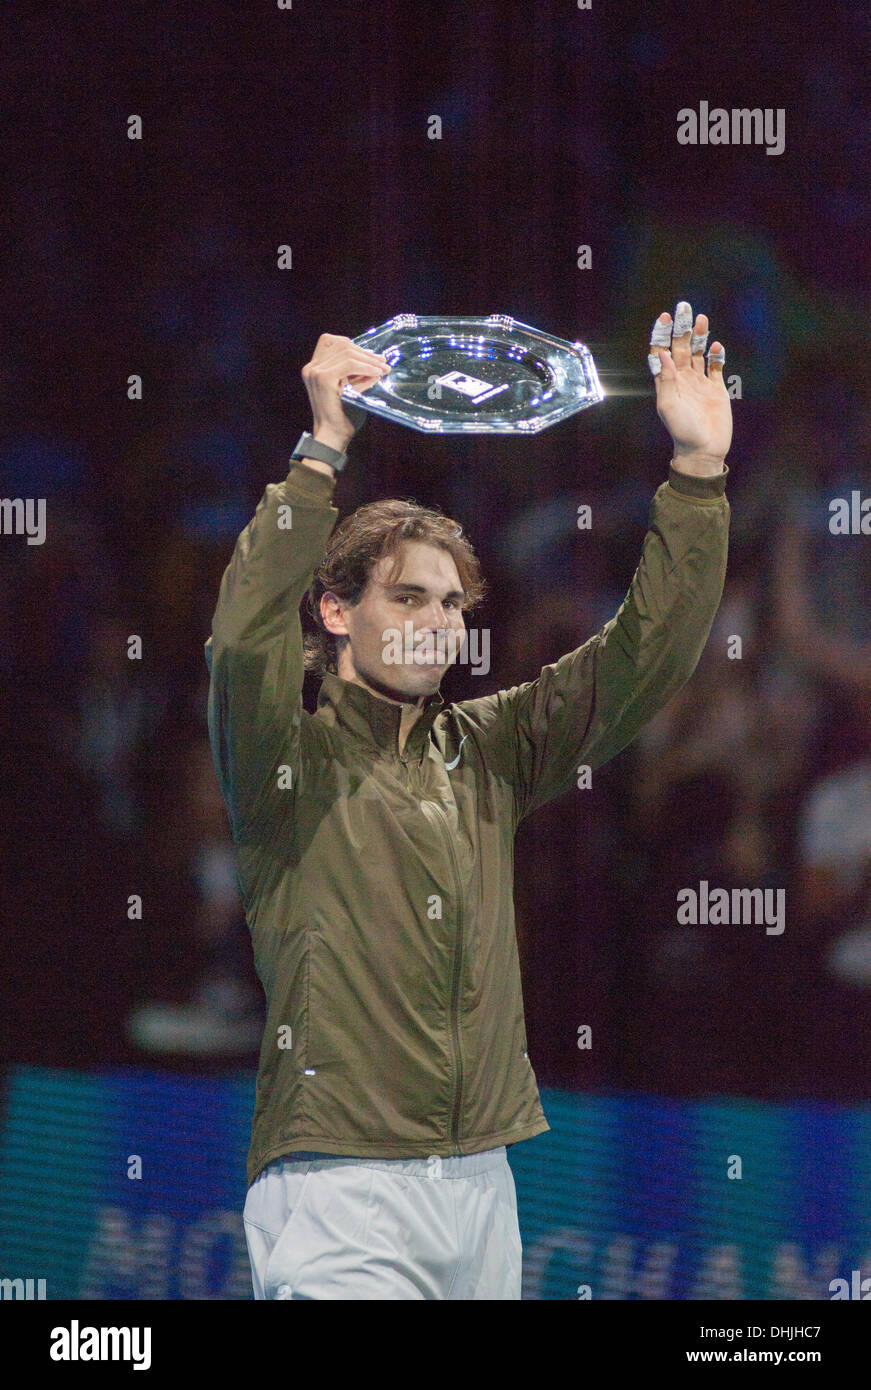 The O2, London, UK. 11 Nov, 2013. Rafael Nadal at the ATP World Tour Finals finishes runner-up, losing the match 6-3 6-4 to Novak Djokovic. © Malcolm Park editorial/Alamy Live News - Stock Image